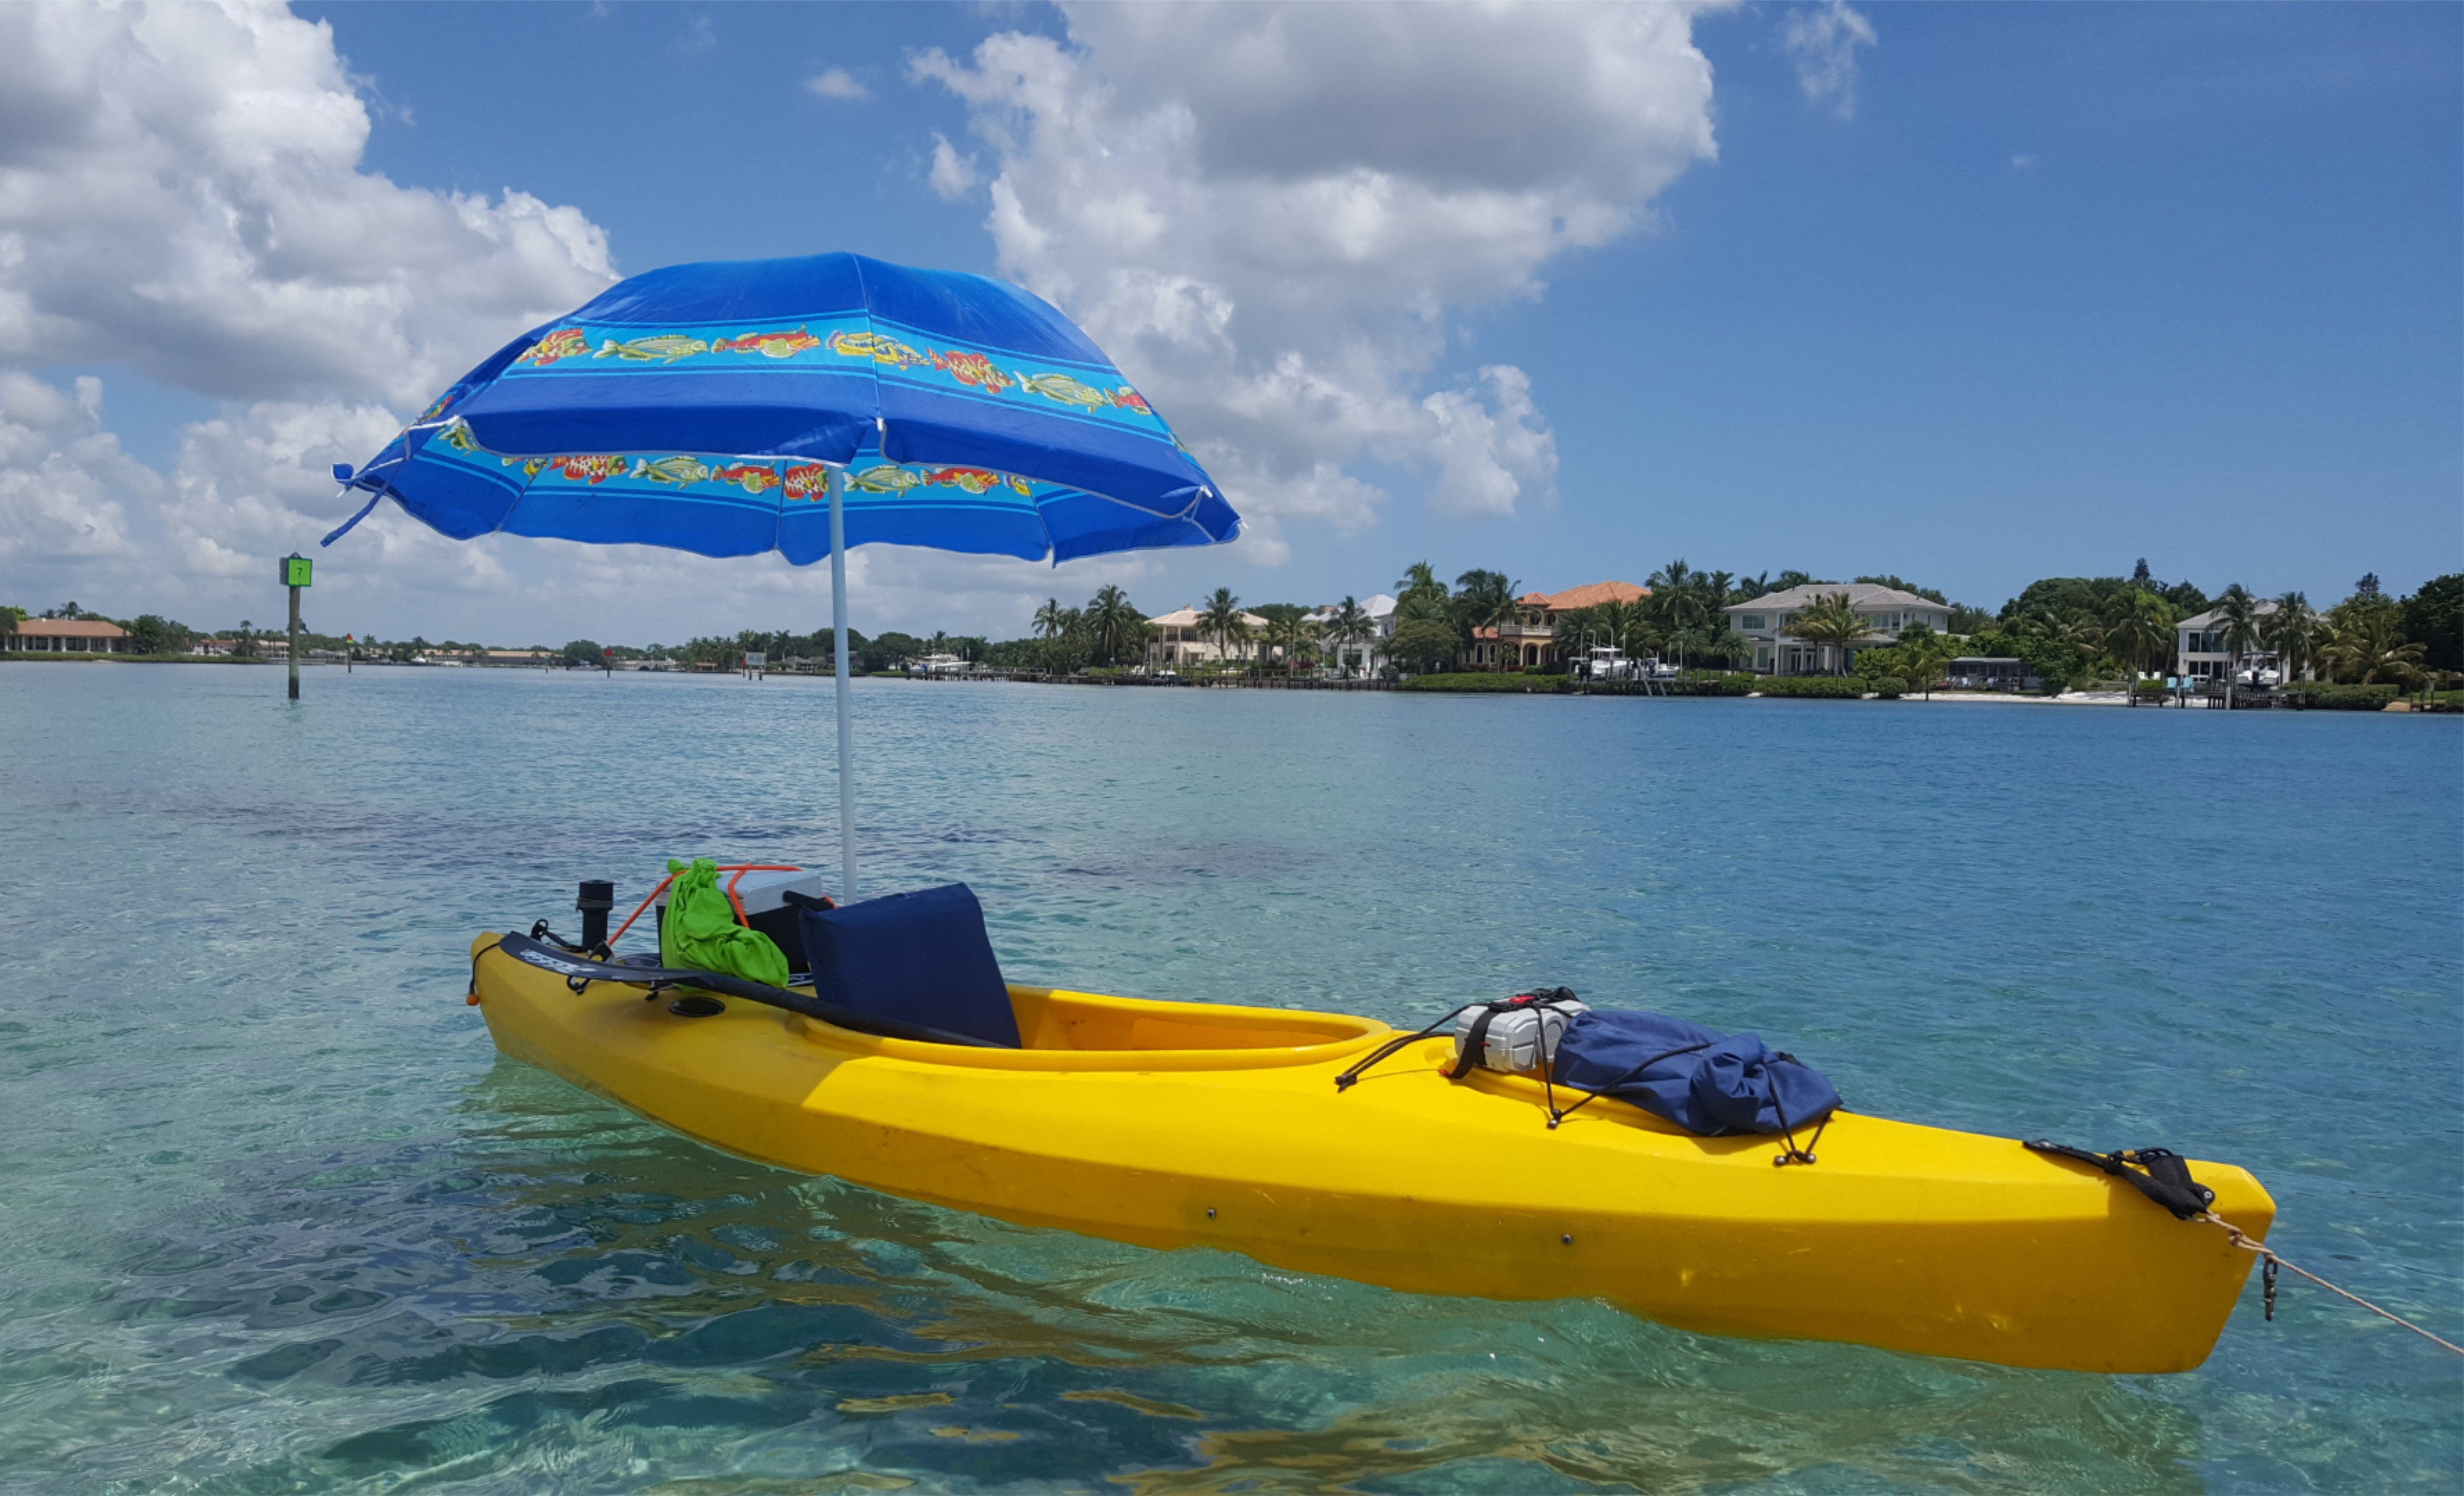 21d666a8aee4 John Curtin Home Inspector - Where to Kayak and Paddle Board around ...